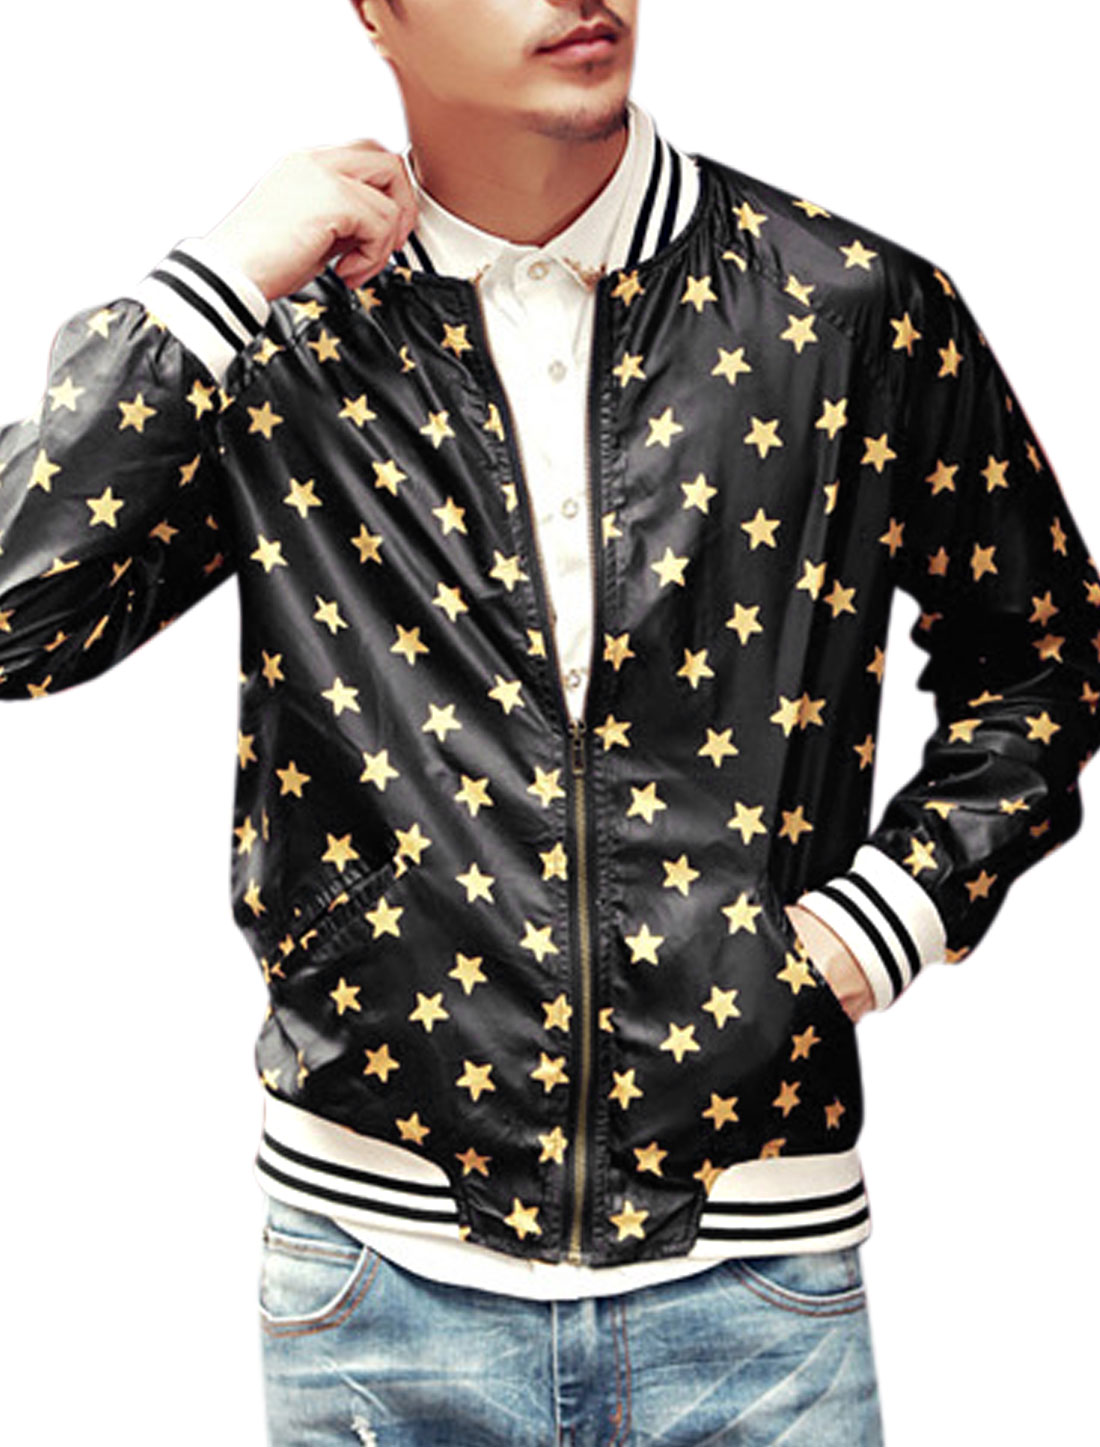 Men Stars Pattern Zip Up Front Pockets Casual Jacket Black Yellow S